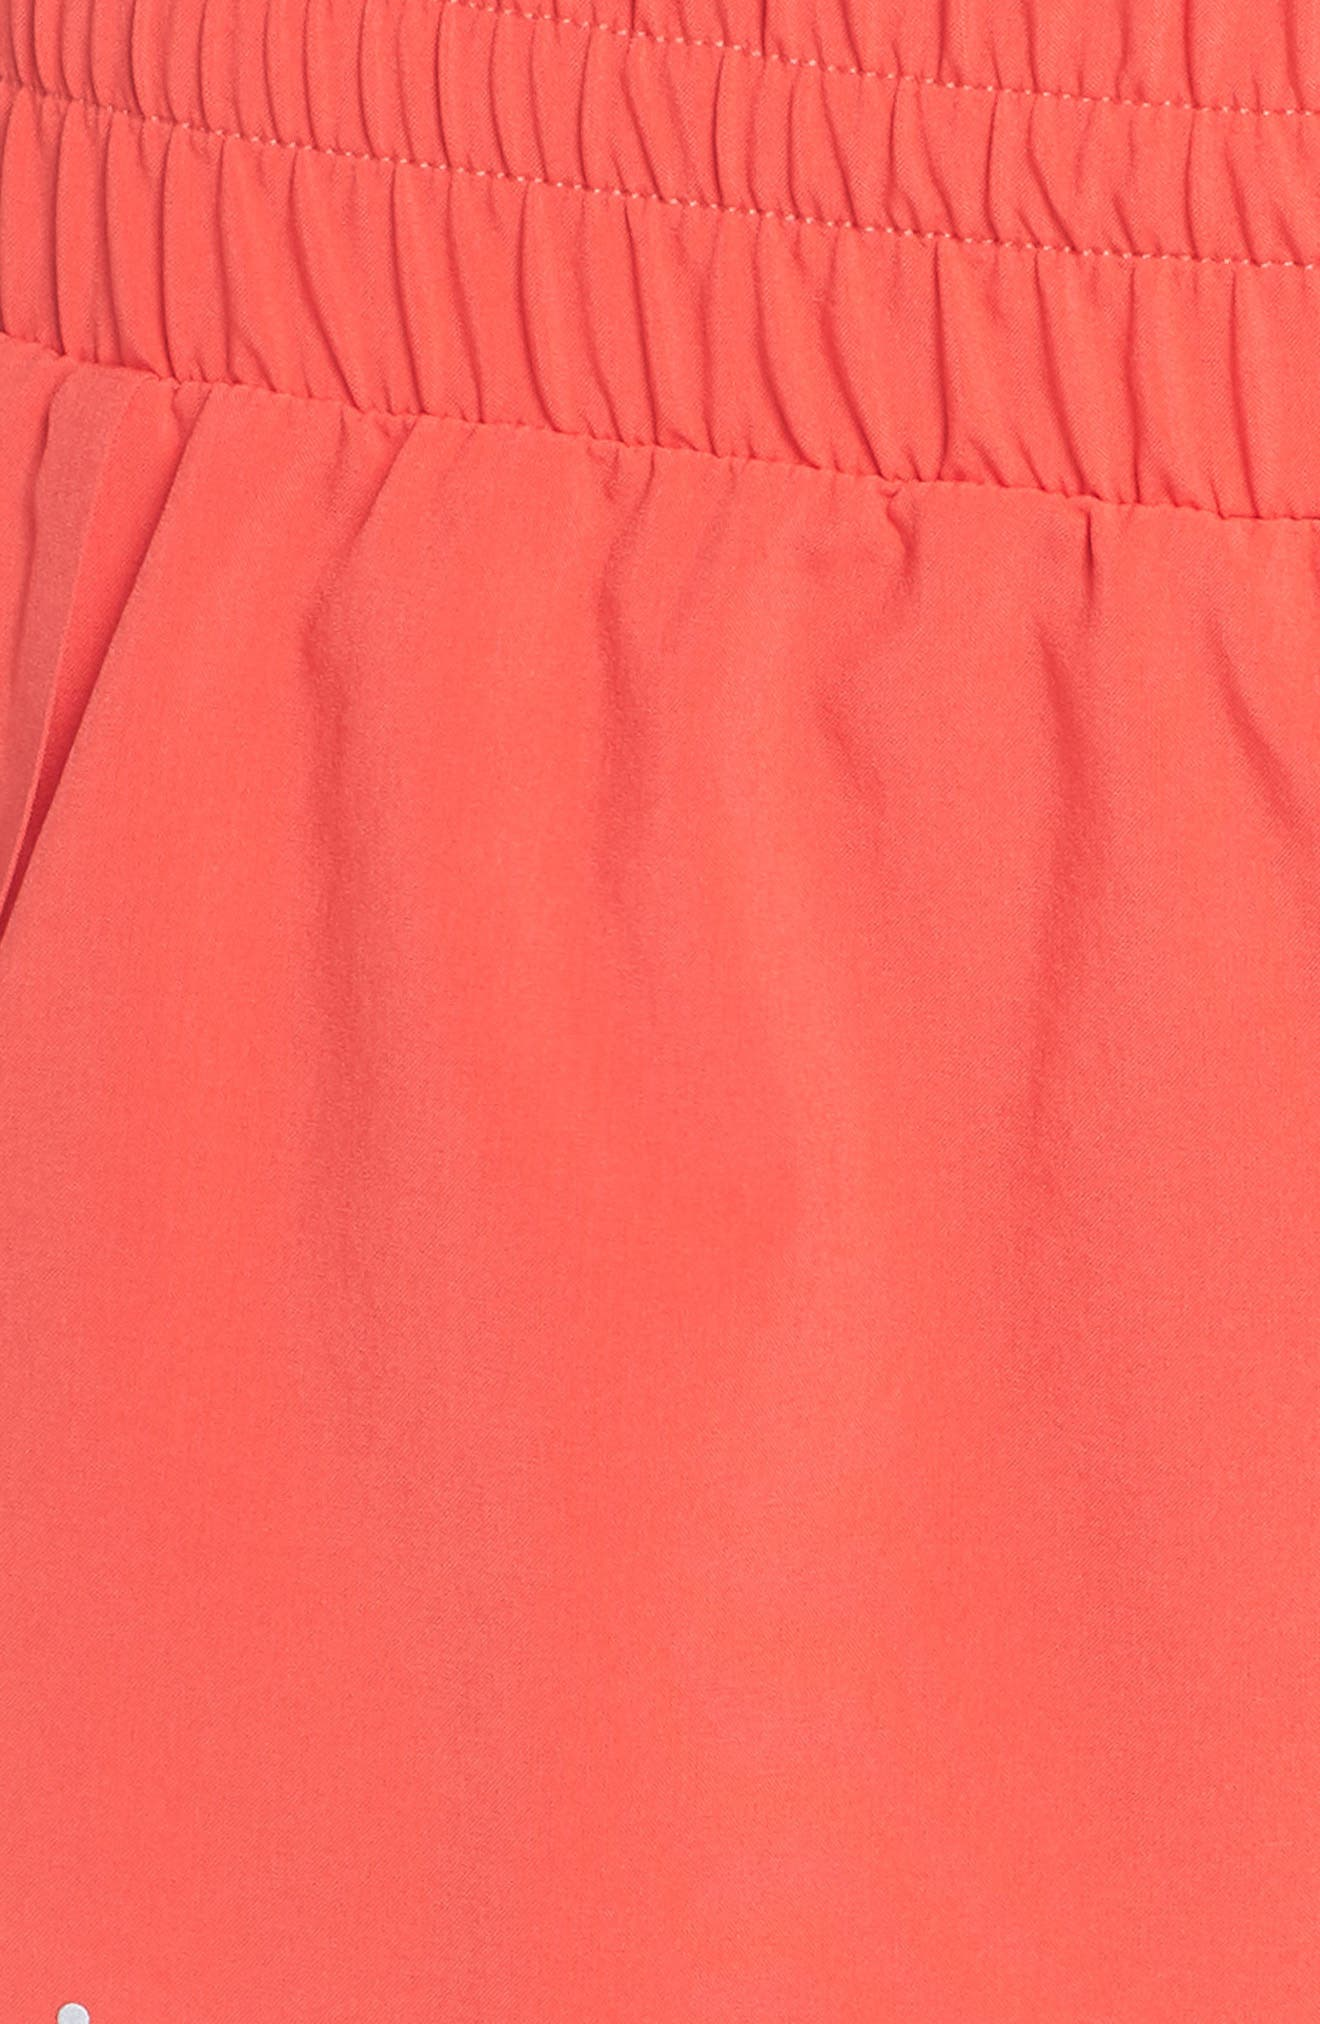 Run Play Shorts,                             Alternate thumbnail 6, color,                             Red Hibiscus